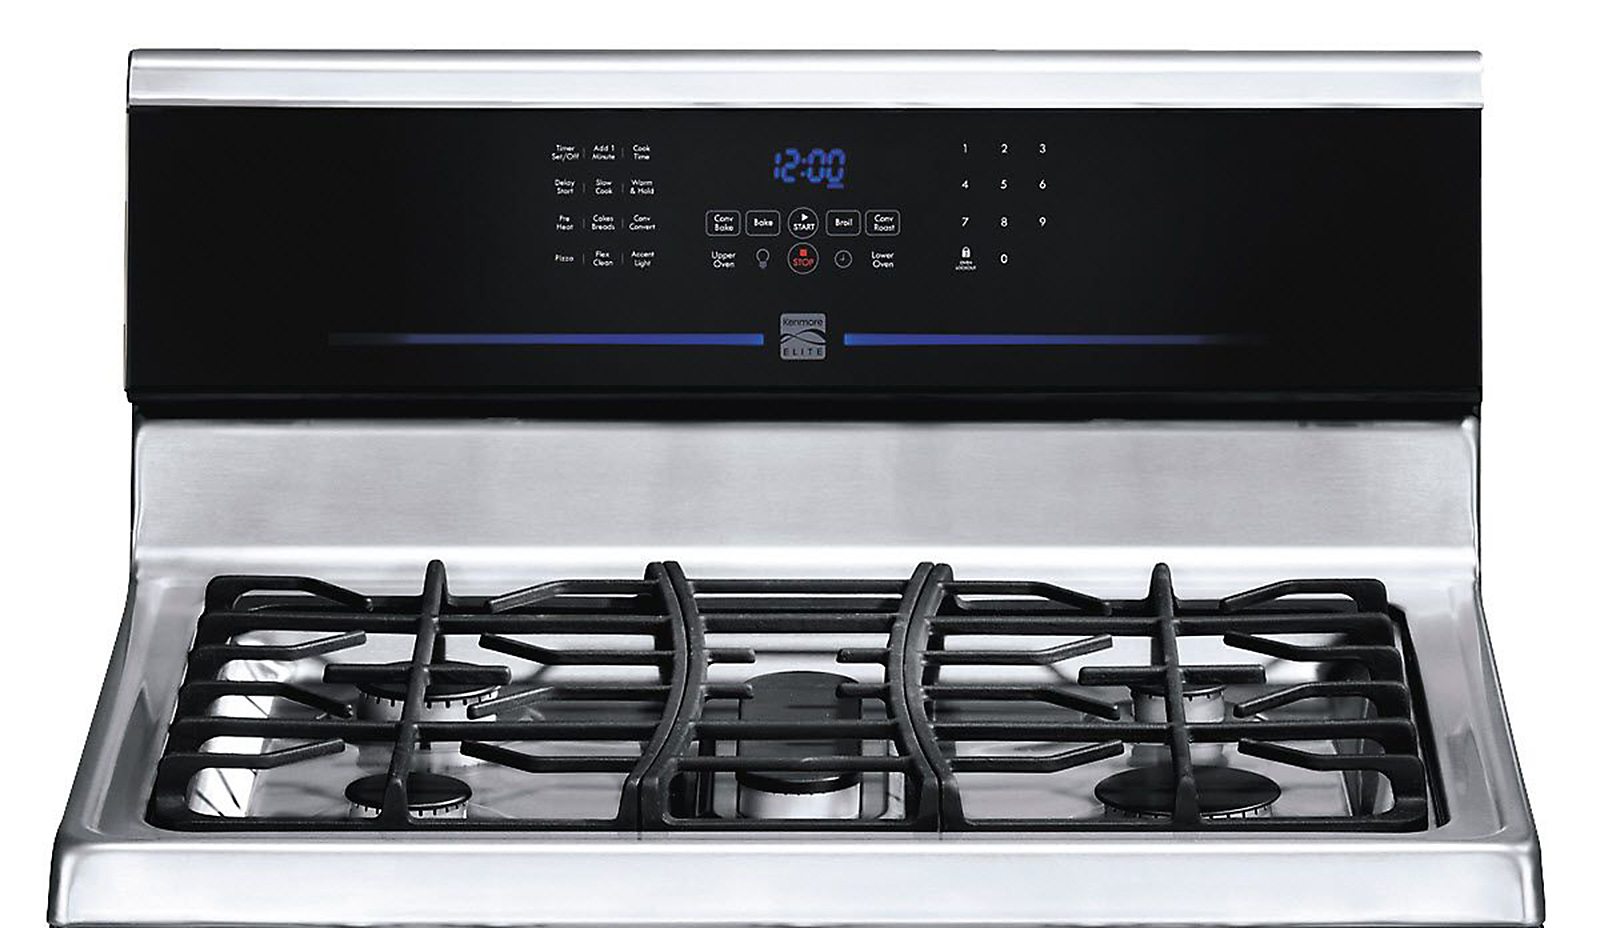 Kenmore Elite 78923 5.8 cu. ft. Double-Oven Gas Range - Stainless Steel